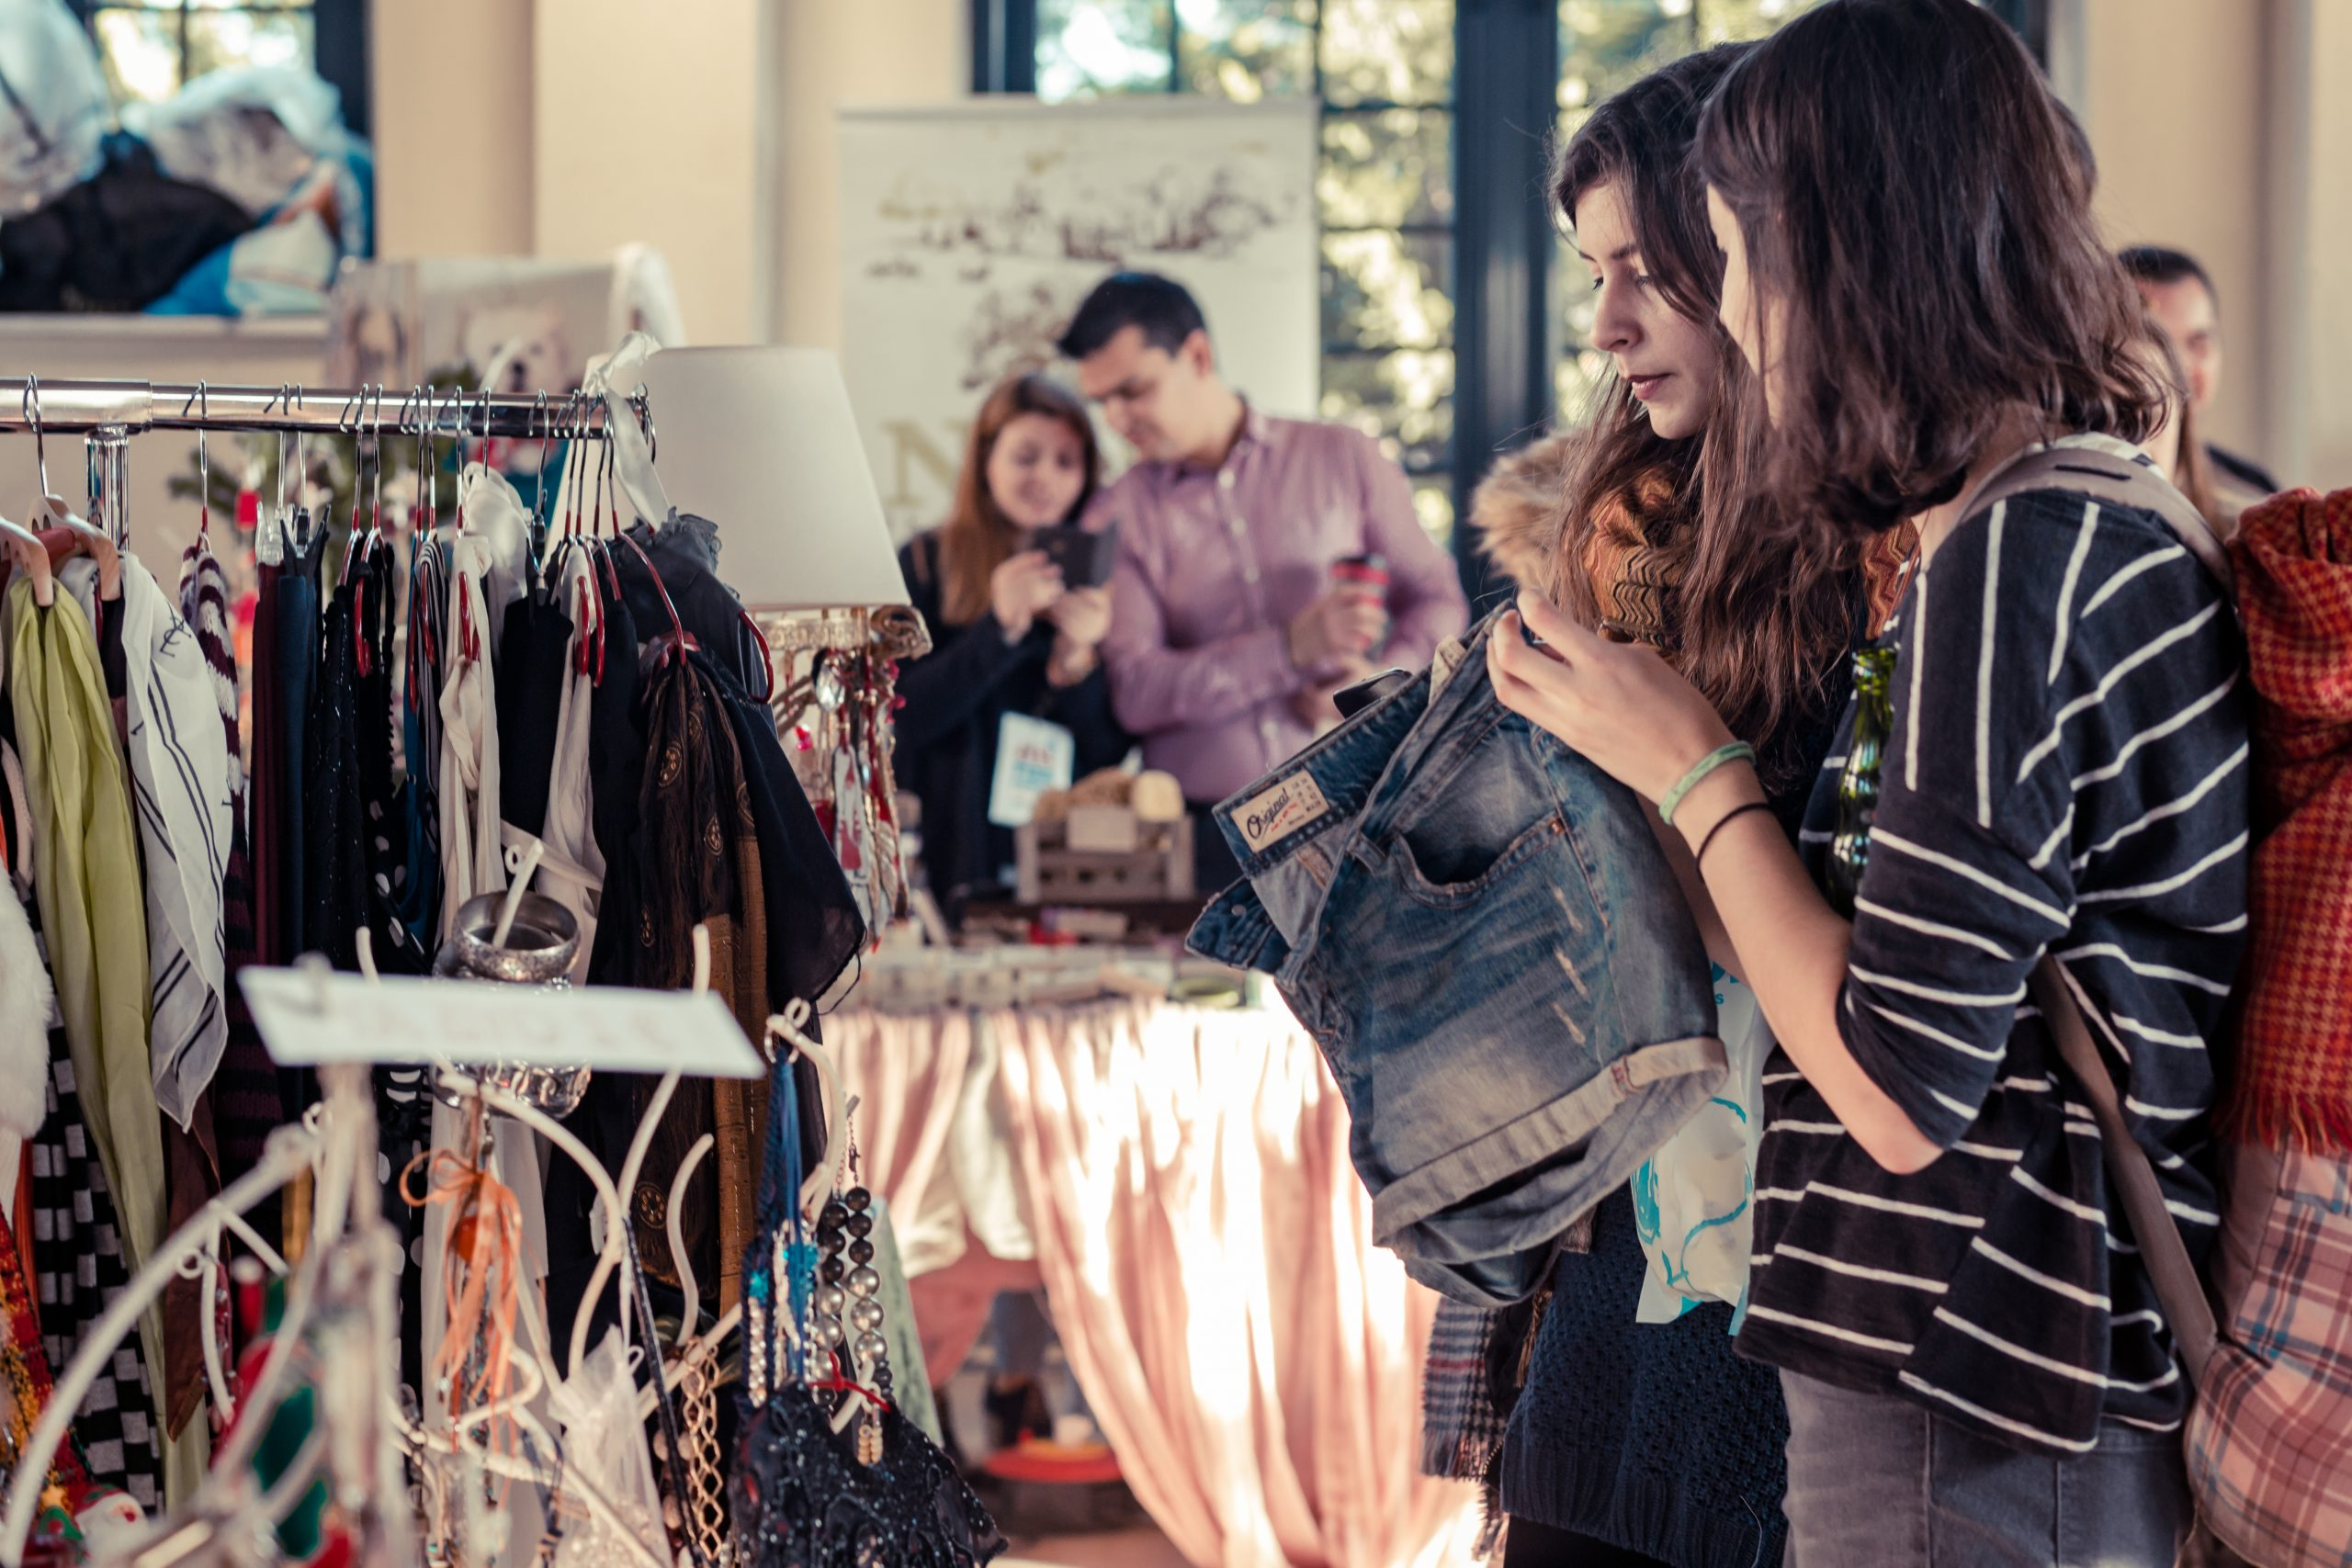 Shoppers purchasing secondhand clothing